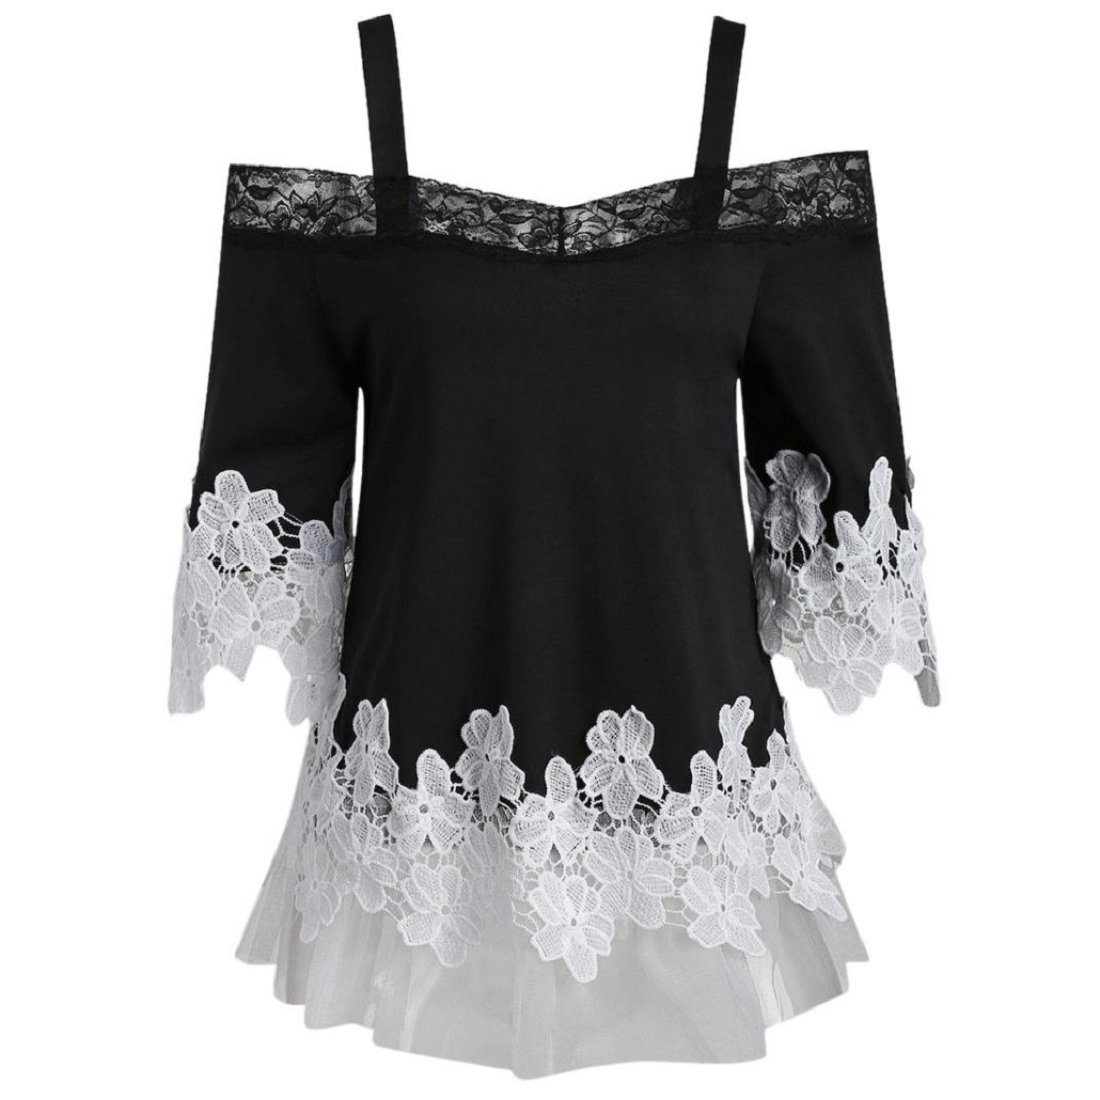 85a82eaae9634 Top14  Womens Off Shoulder Tops Casual Floral Applique Lace Blouse Shirts  T-Shirt Tops